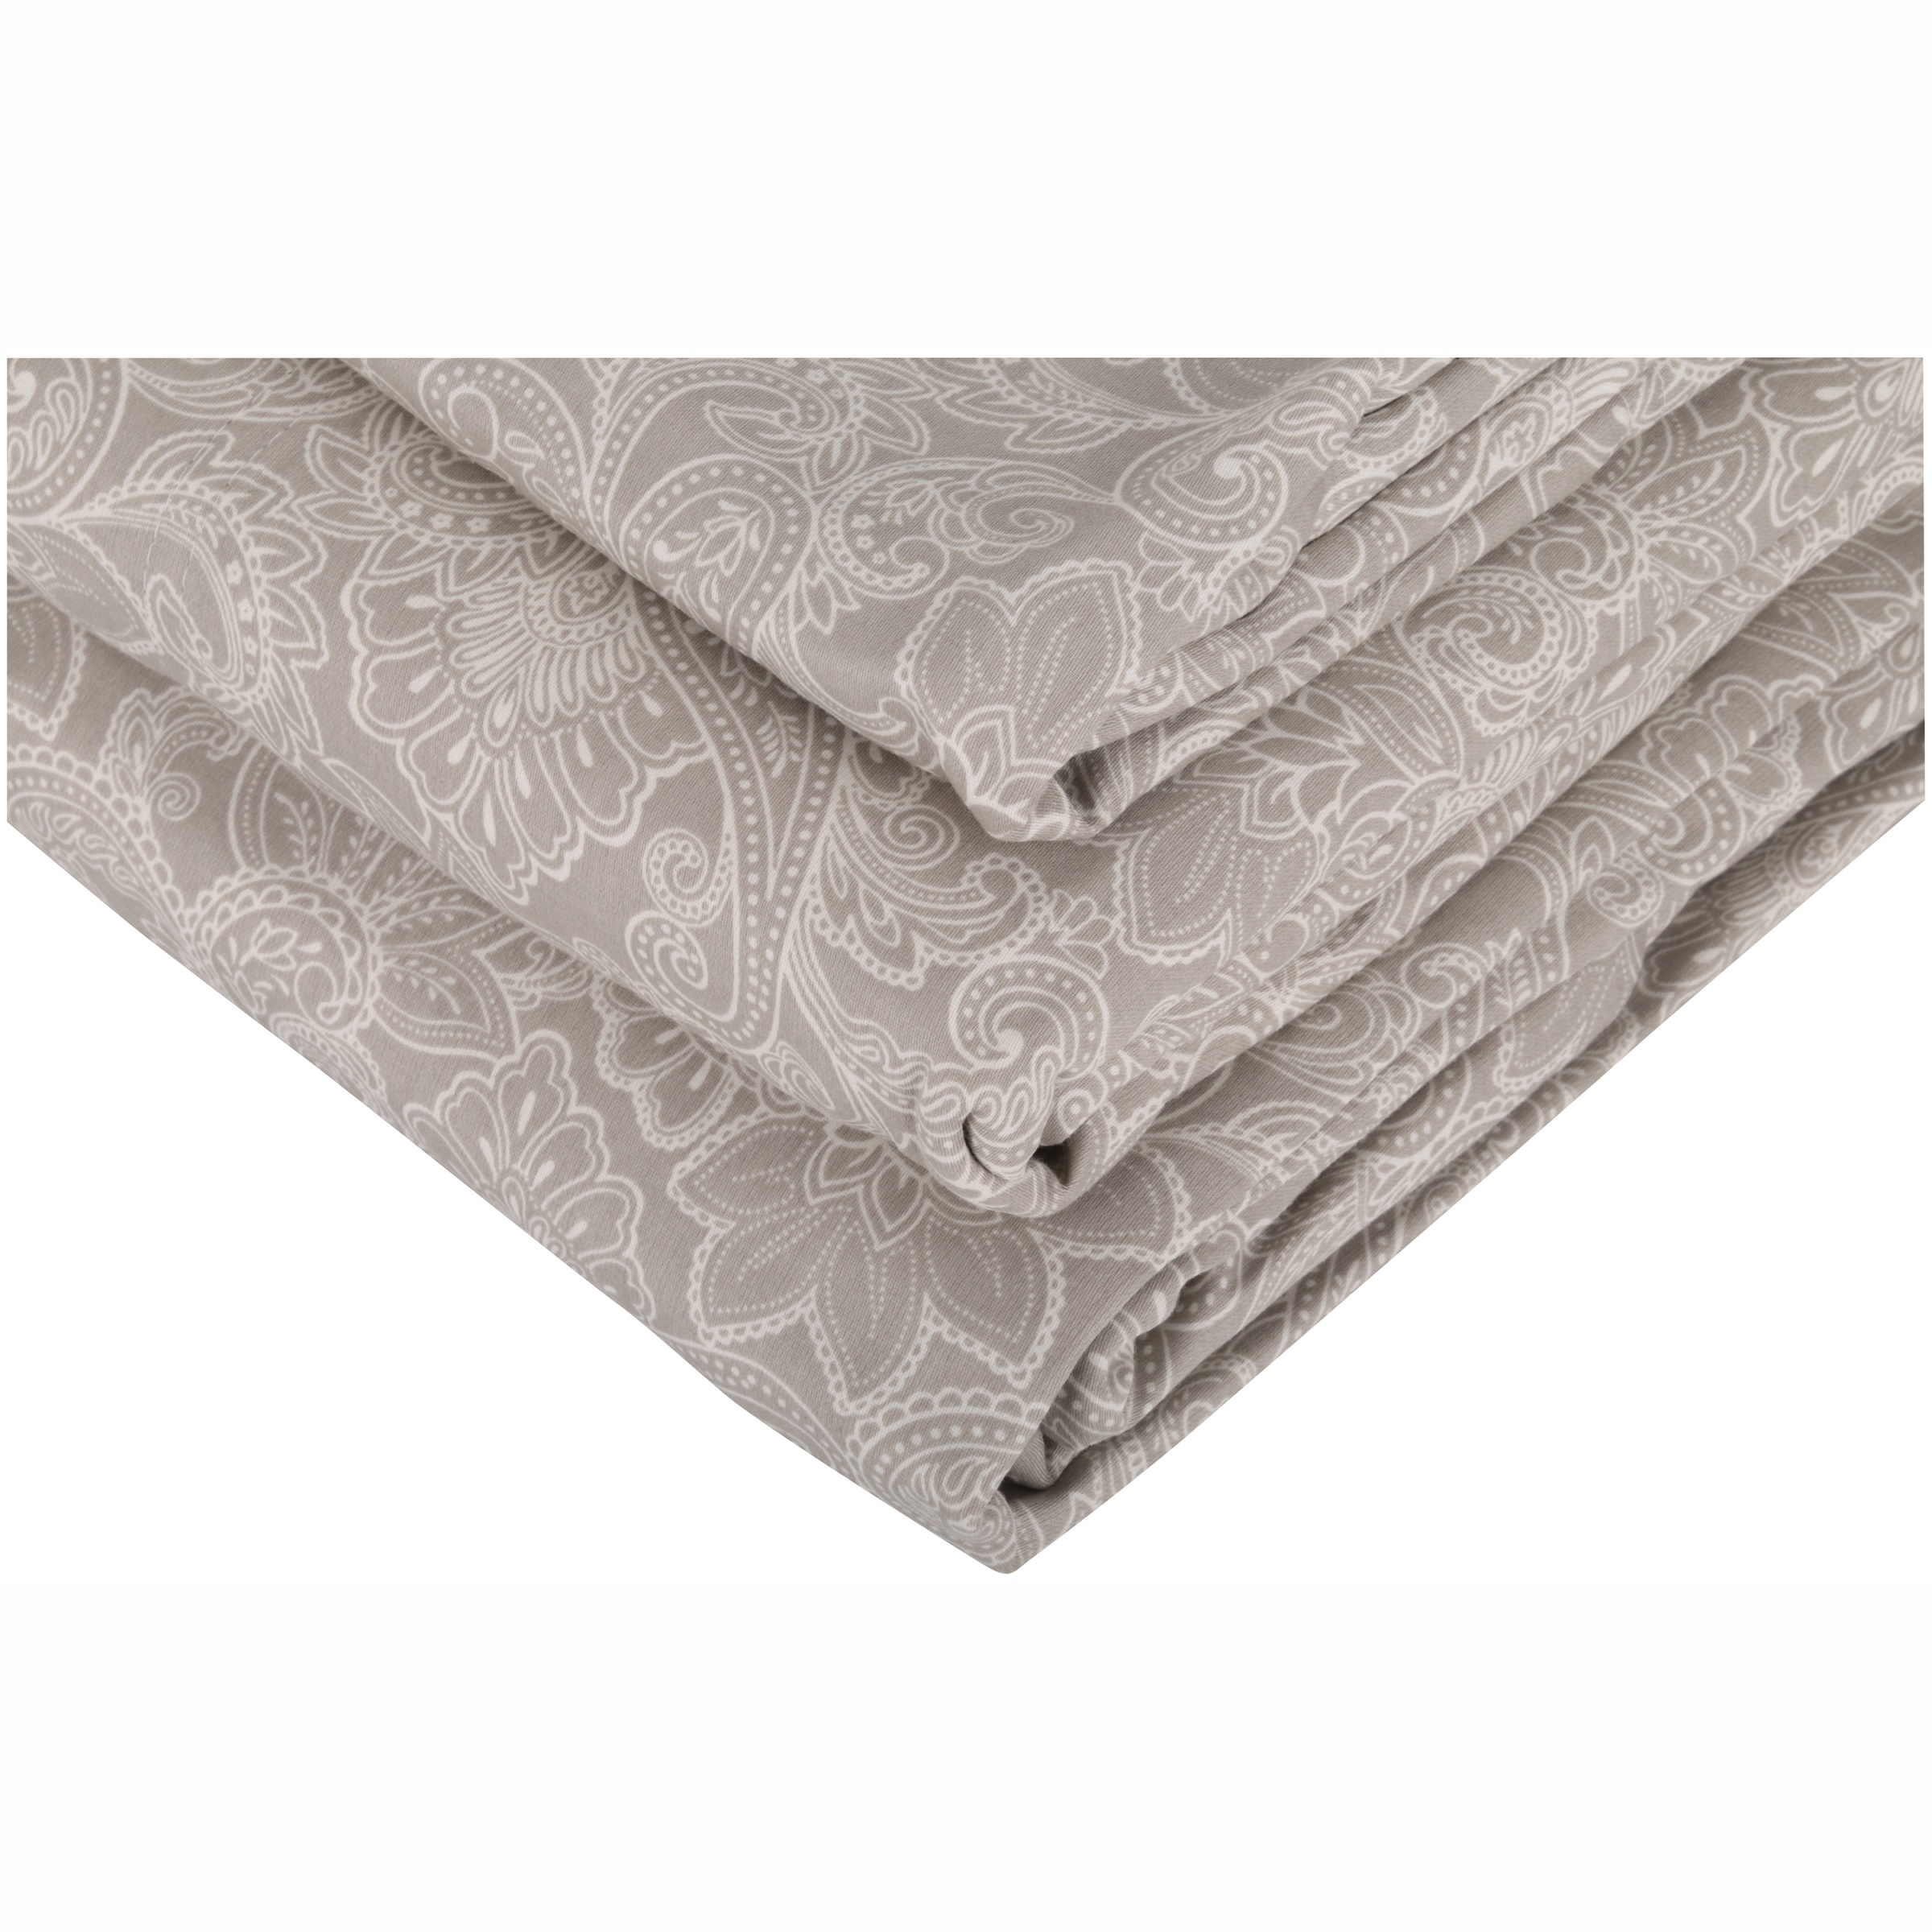 Better Homes Gardens 300 Thread Count Bedding Sheet Collection